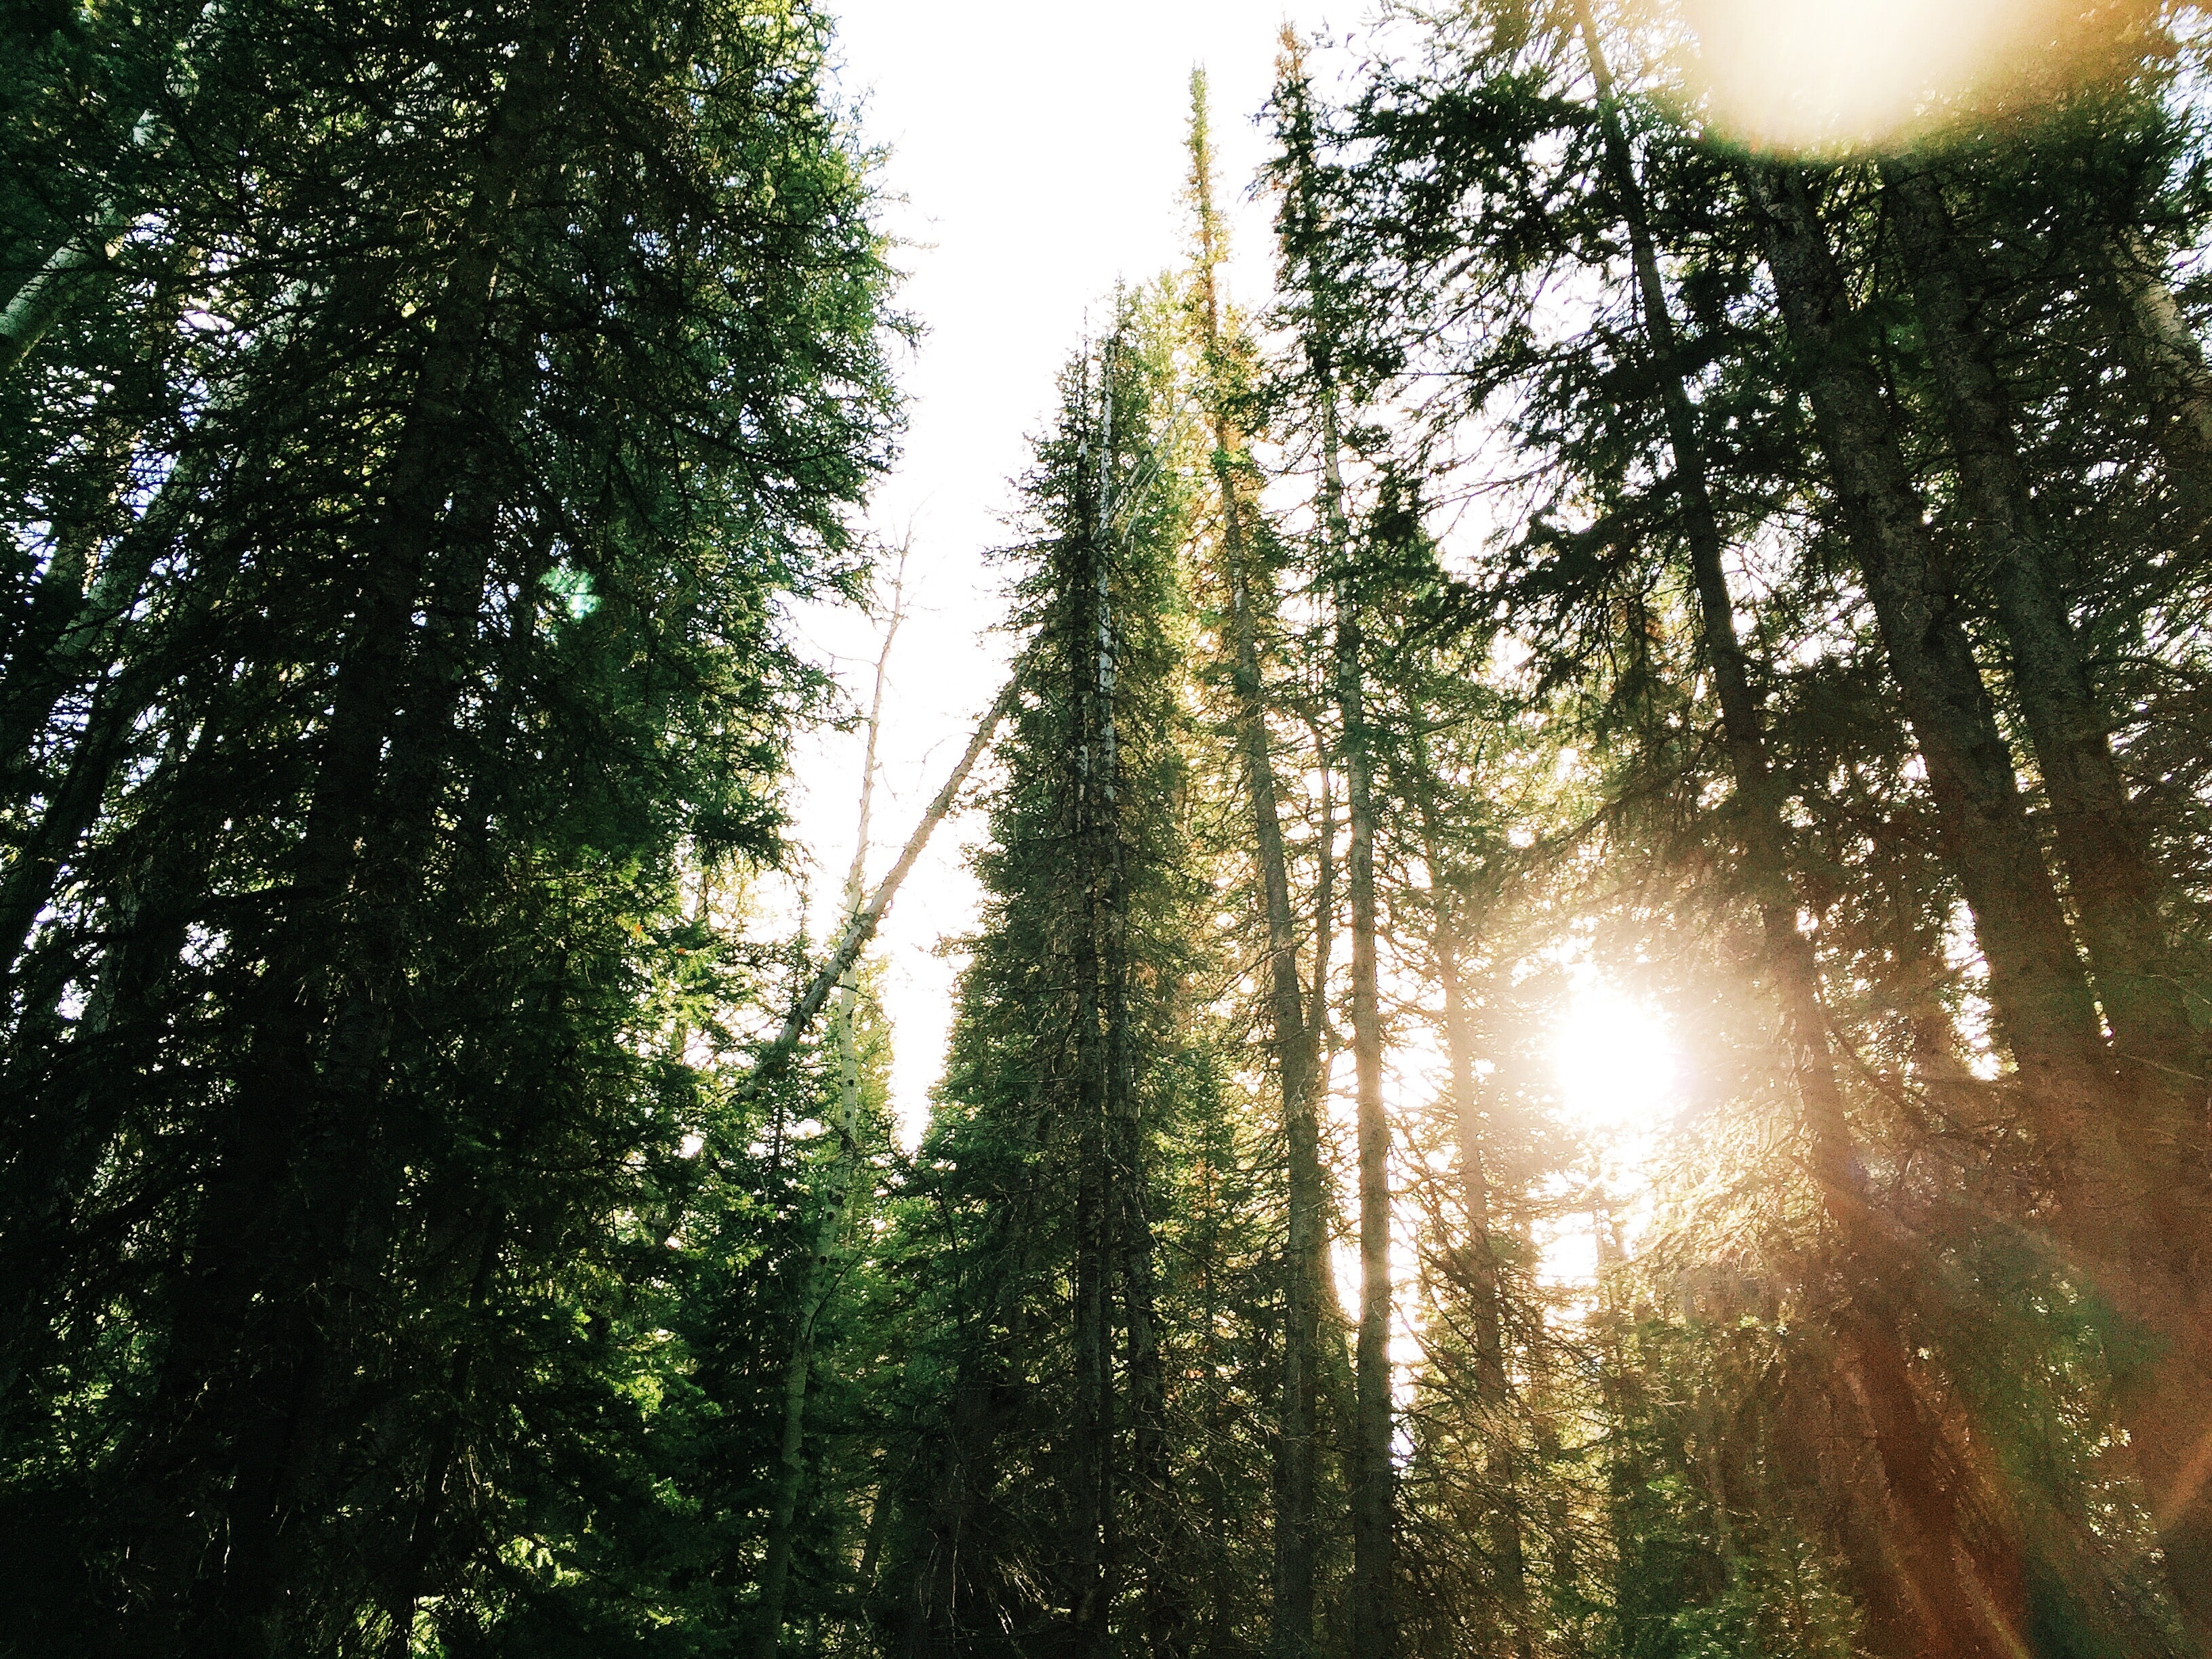 Tall evergreen trees with sun shining through their branches